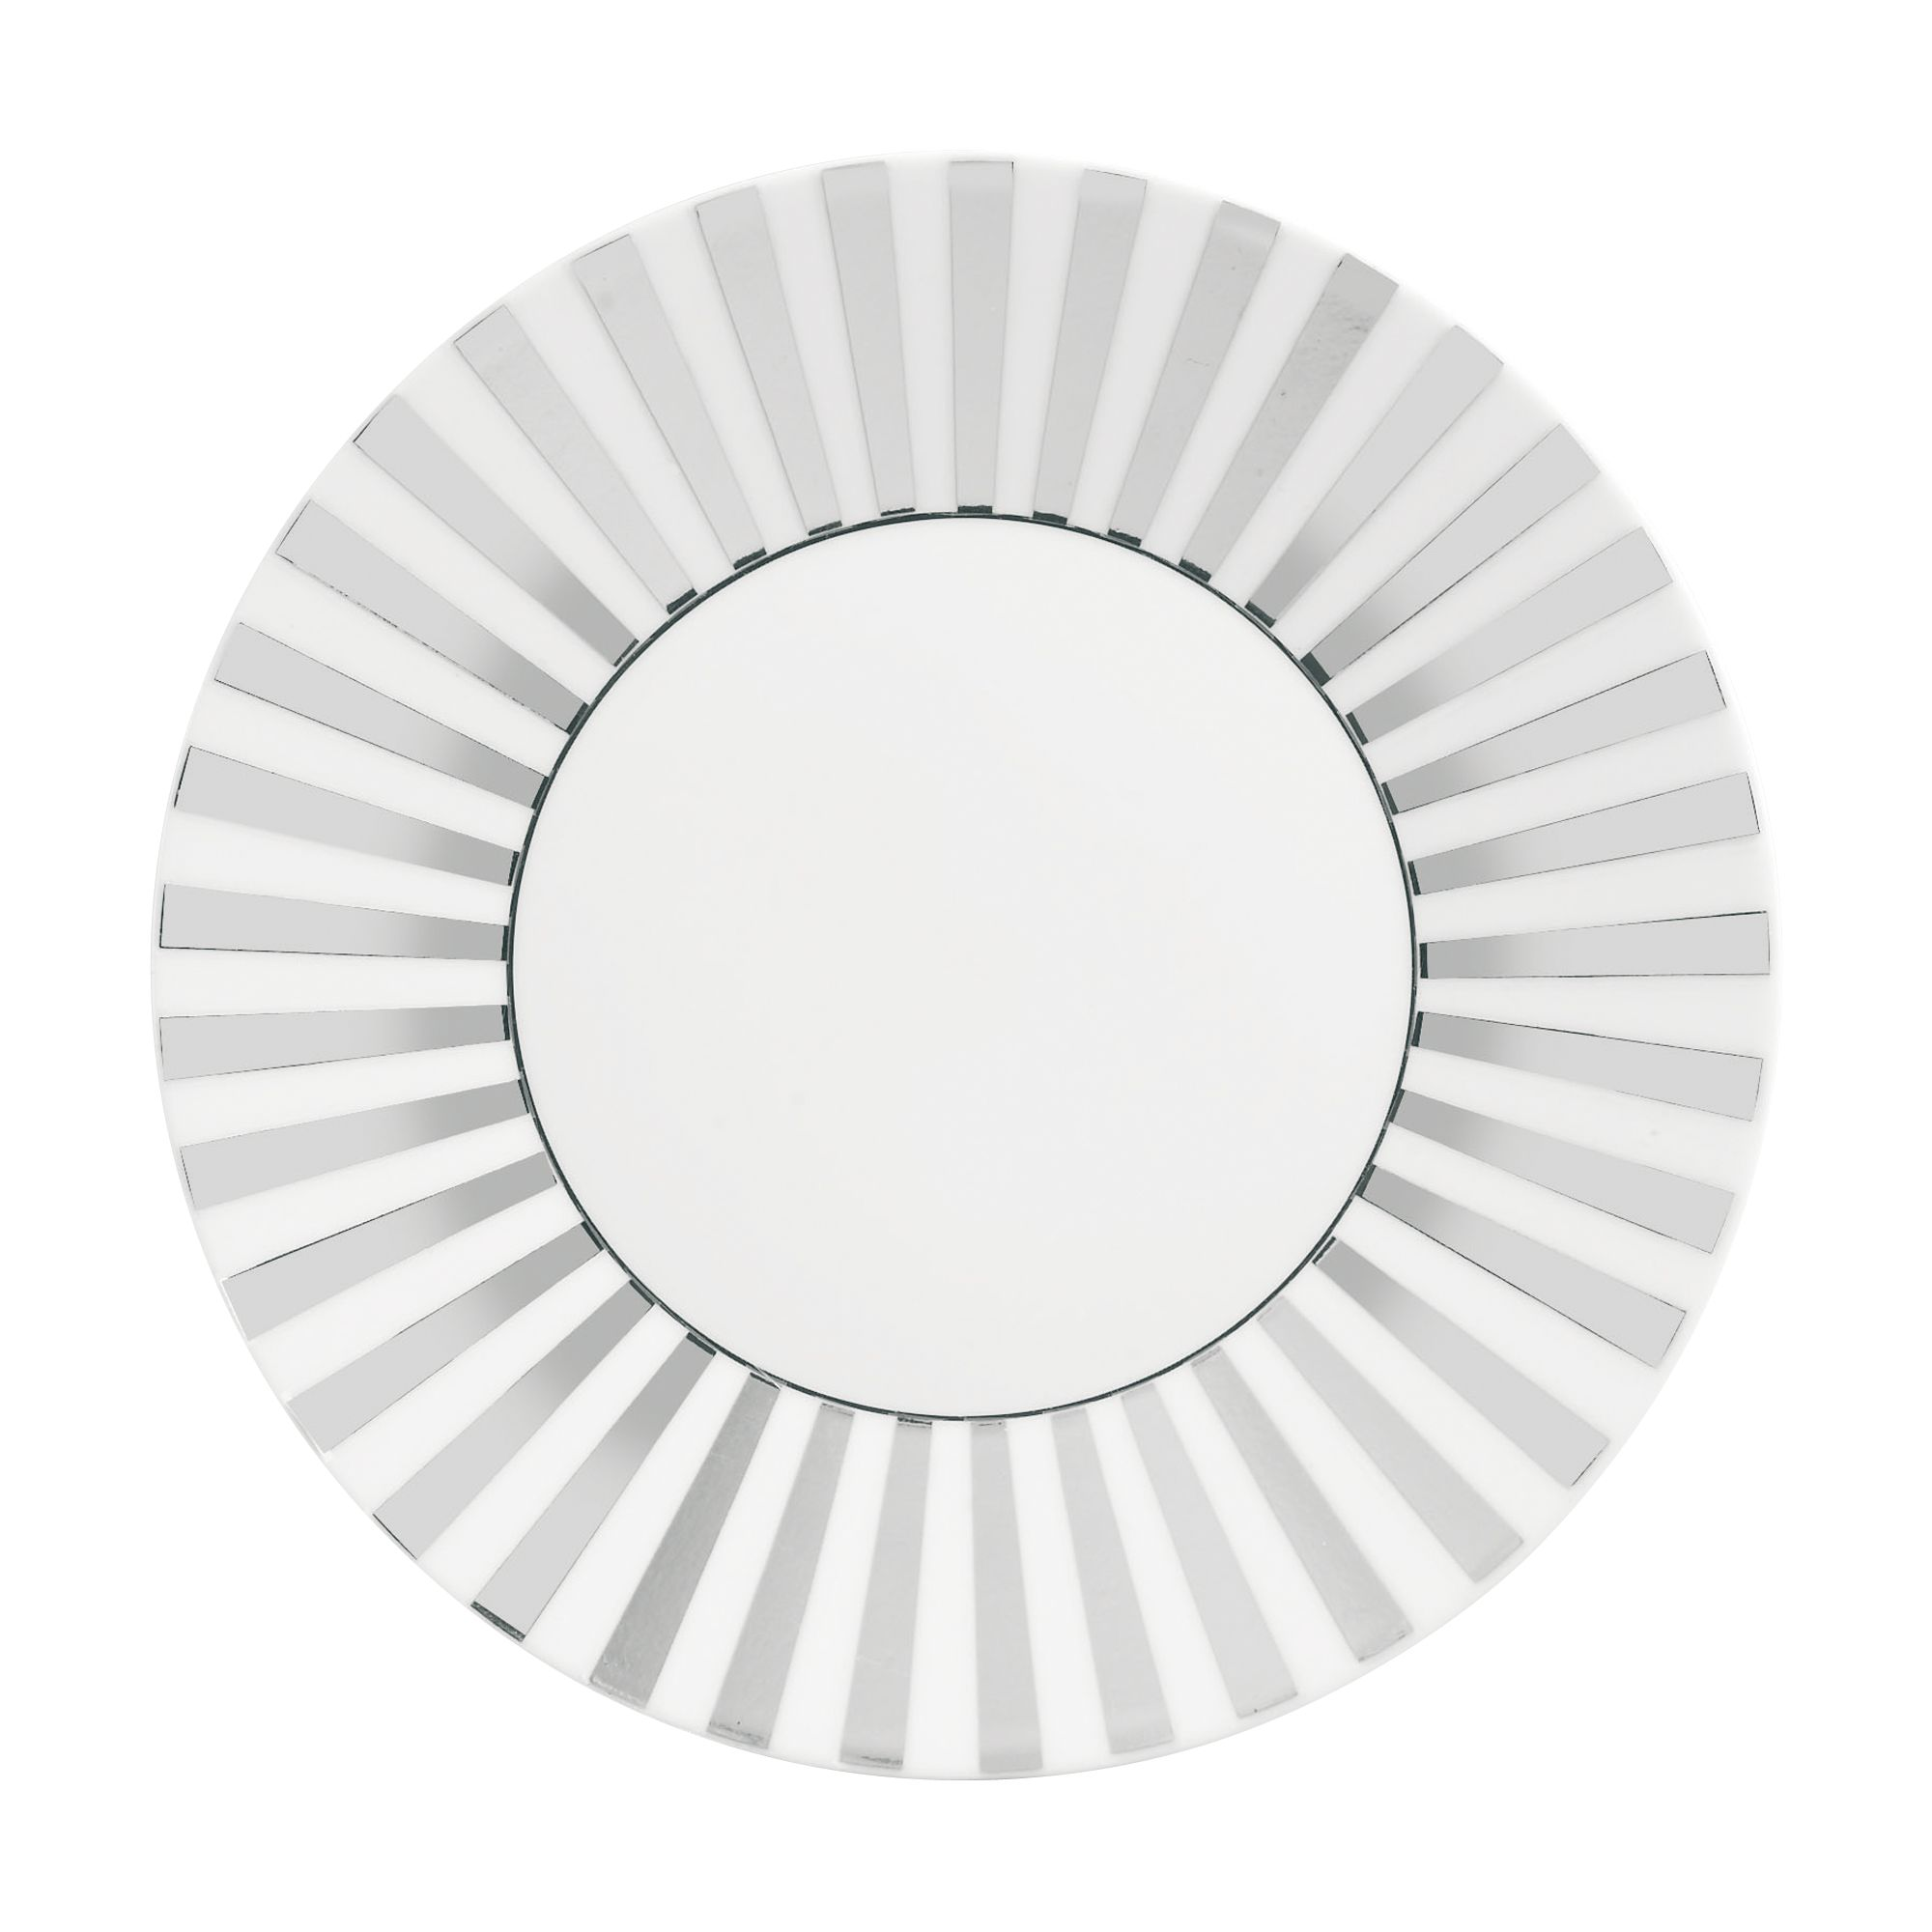 Platinum Striped 23cm Plate